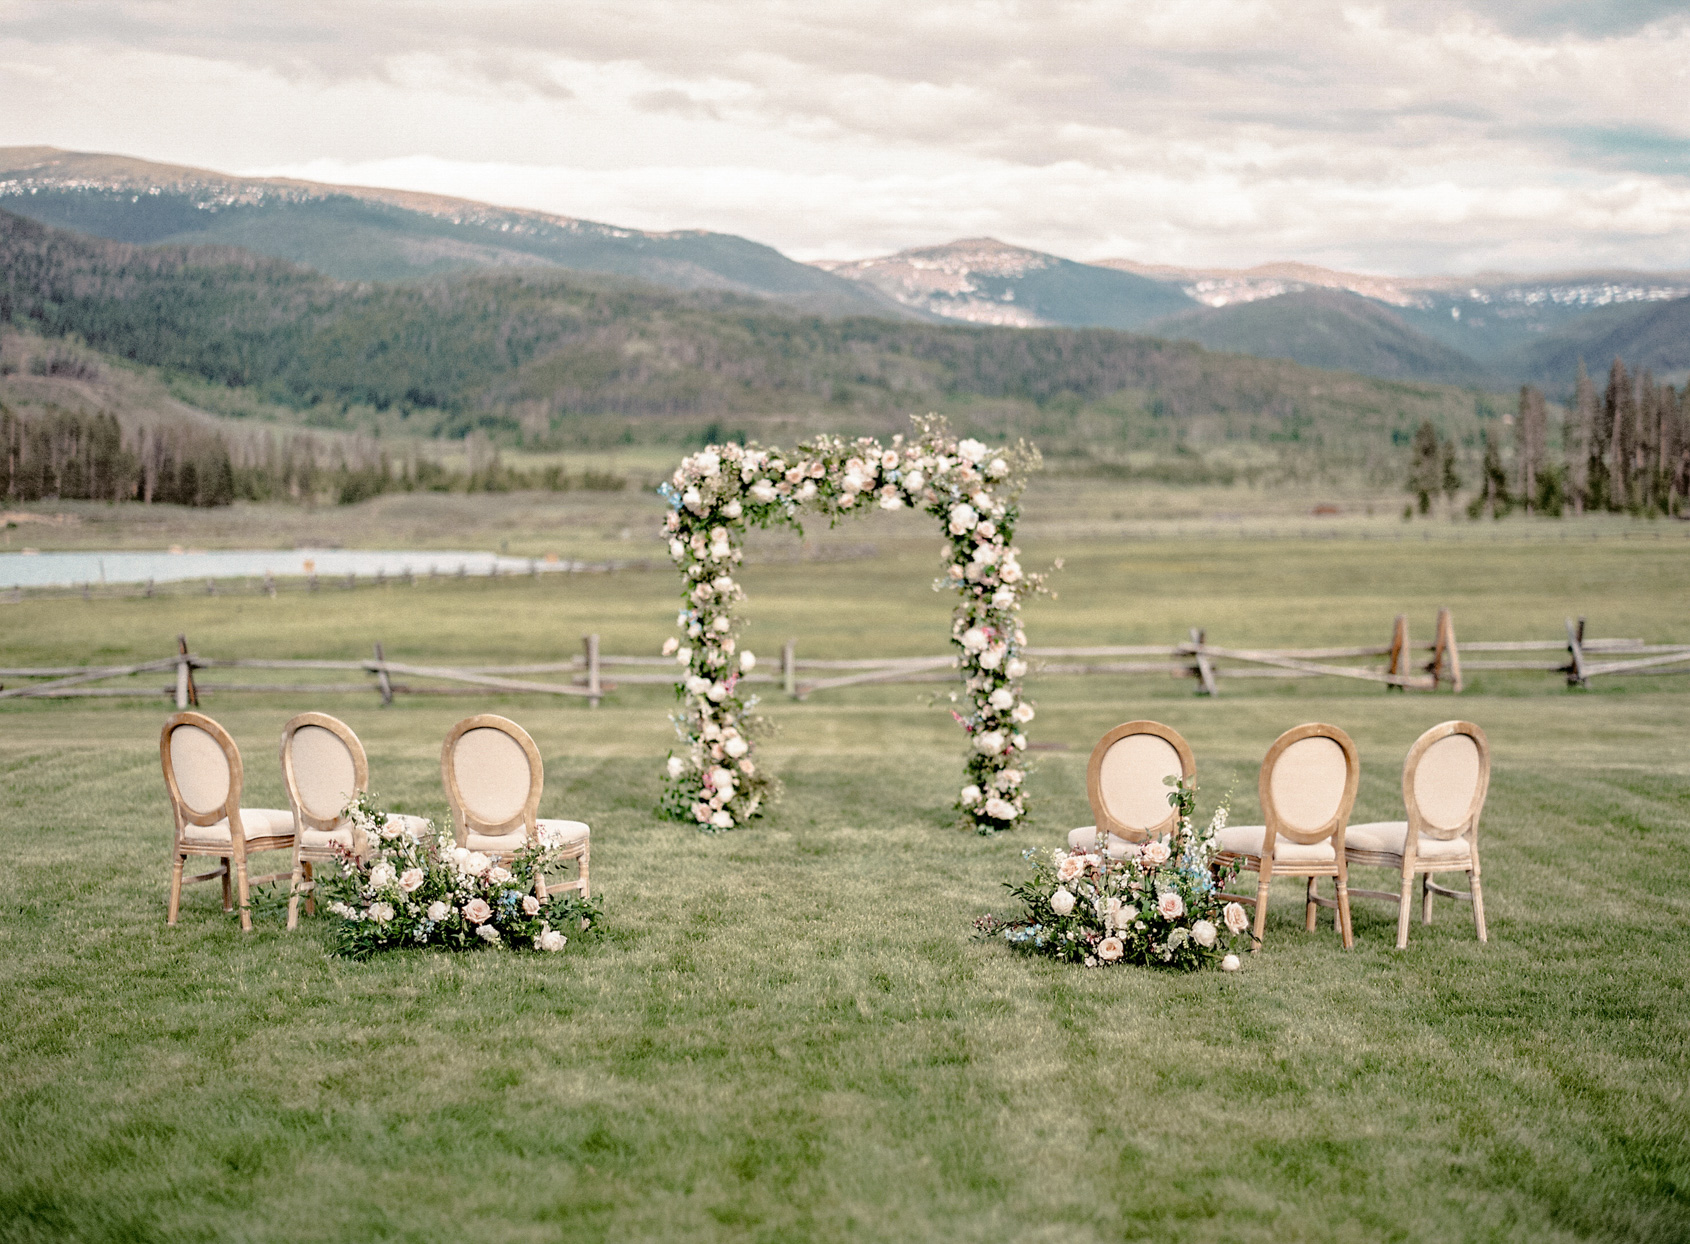 small wedding ceremony setting with floral arch against mountain backdrop